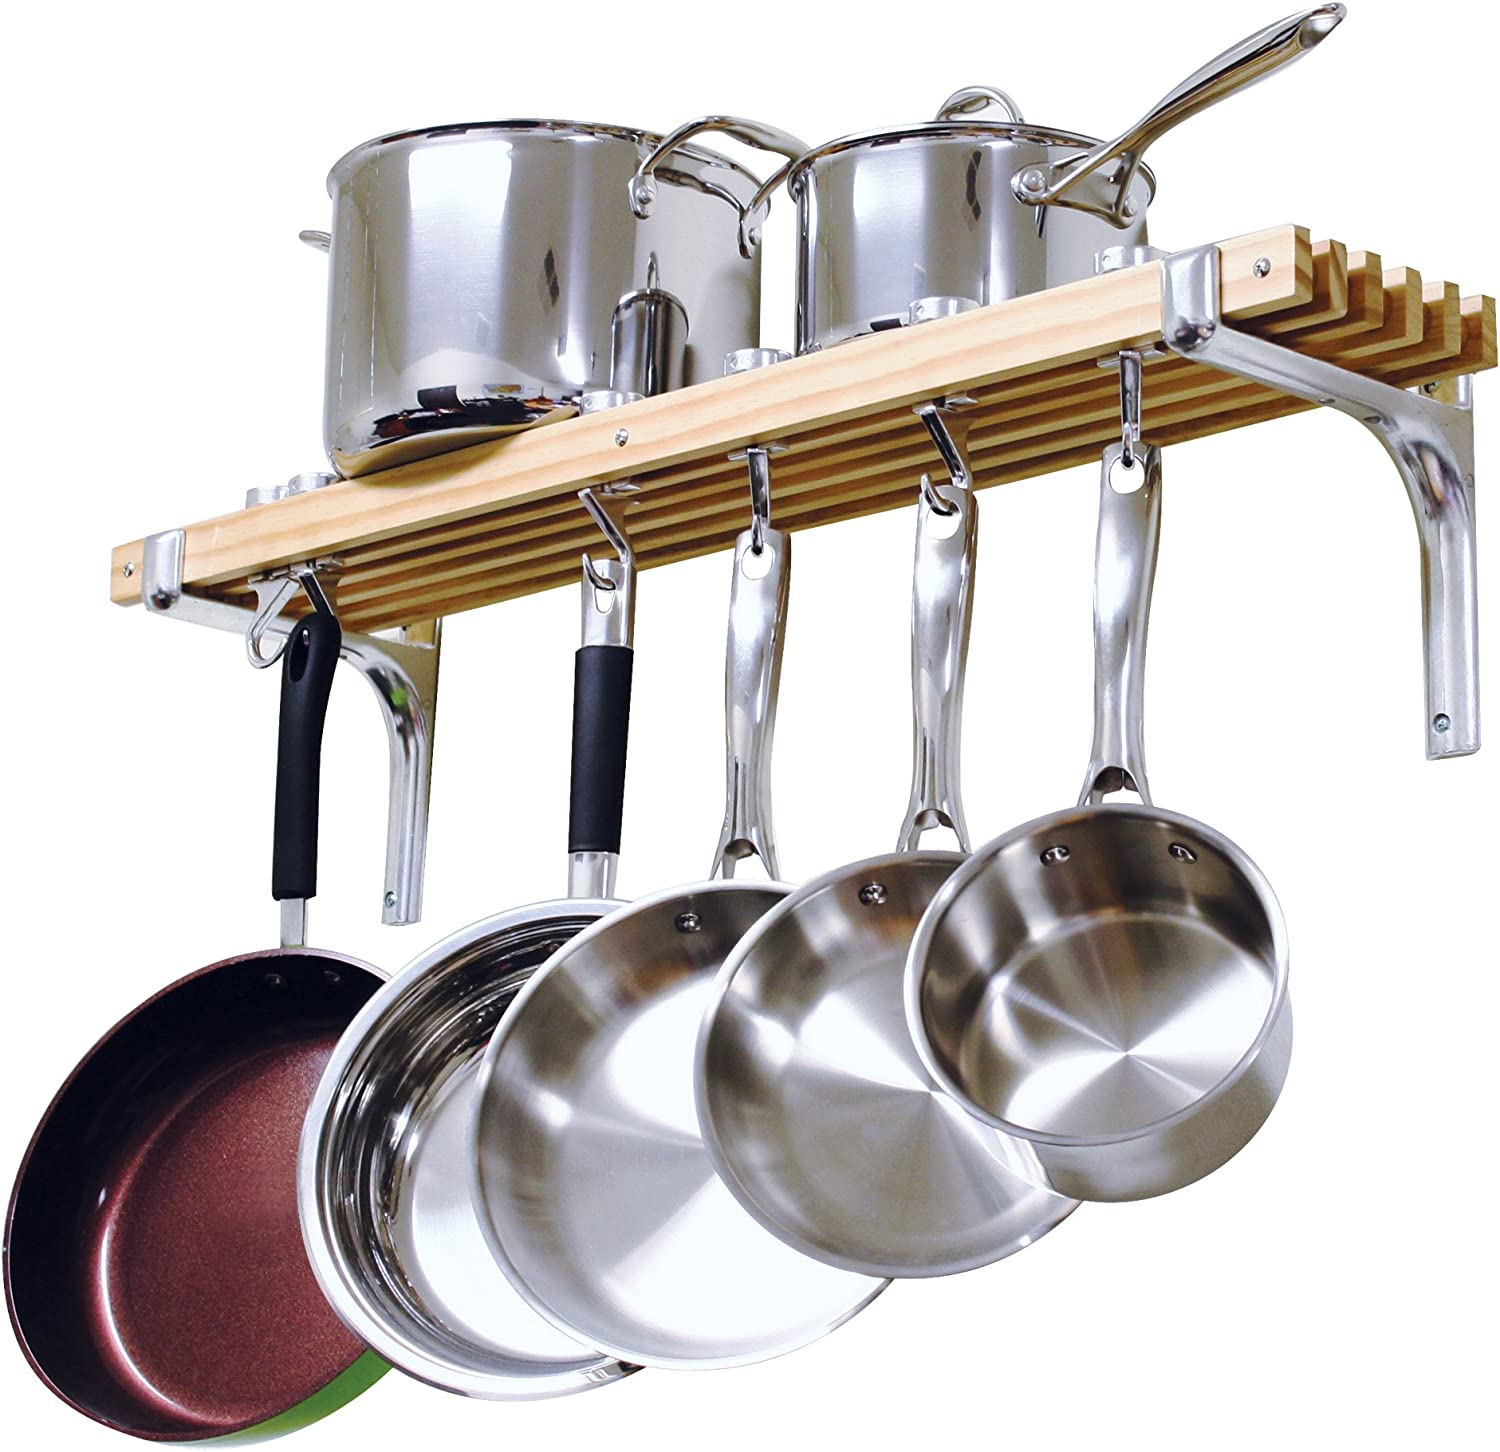 Amazon Com Cooks Standard Wall Mounted Wooden Pot Rack 36 By 8 Inch Kitchen Pot Racks Kitchen Dining